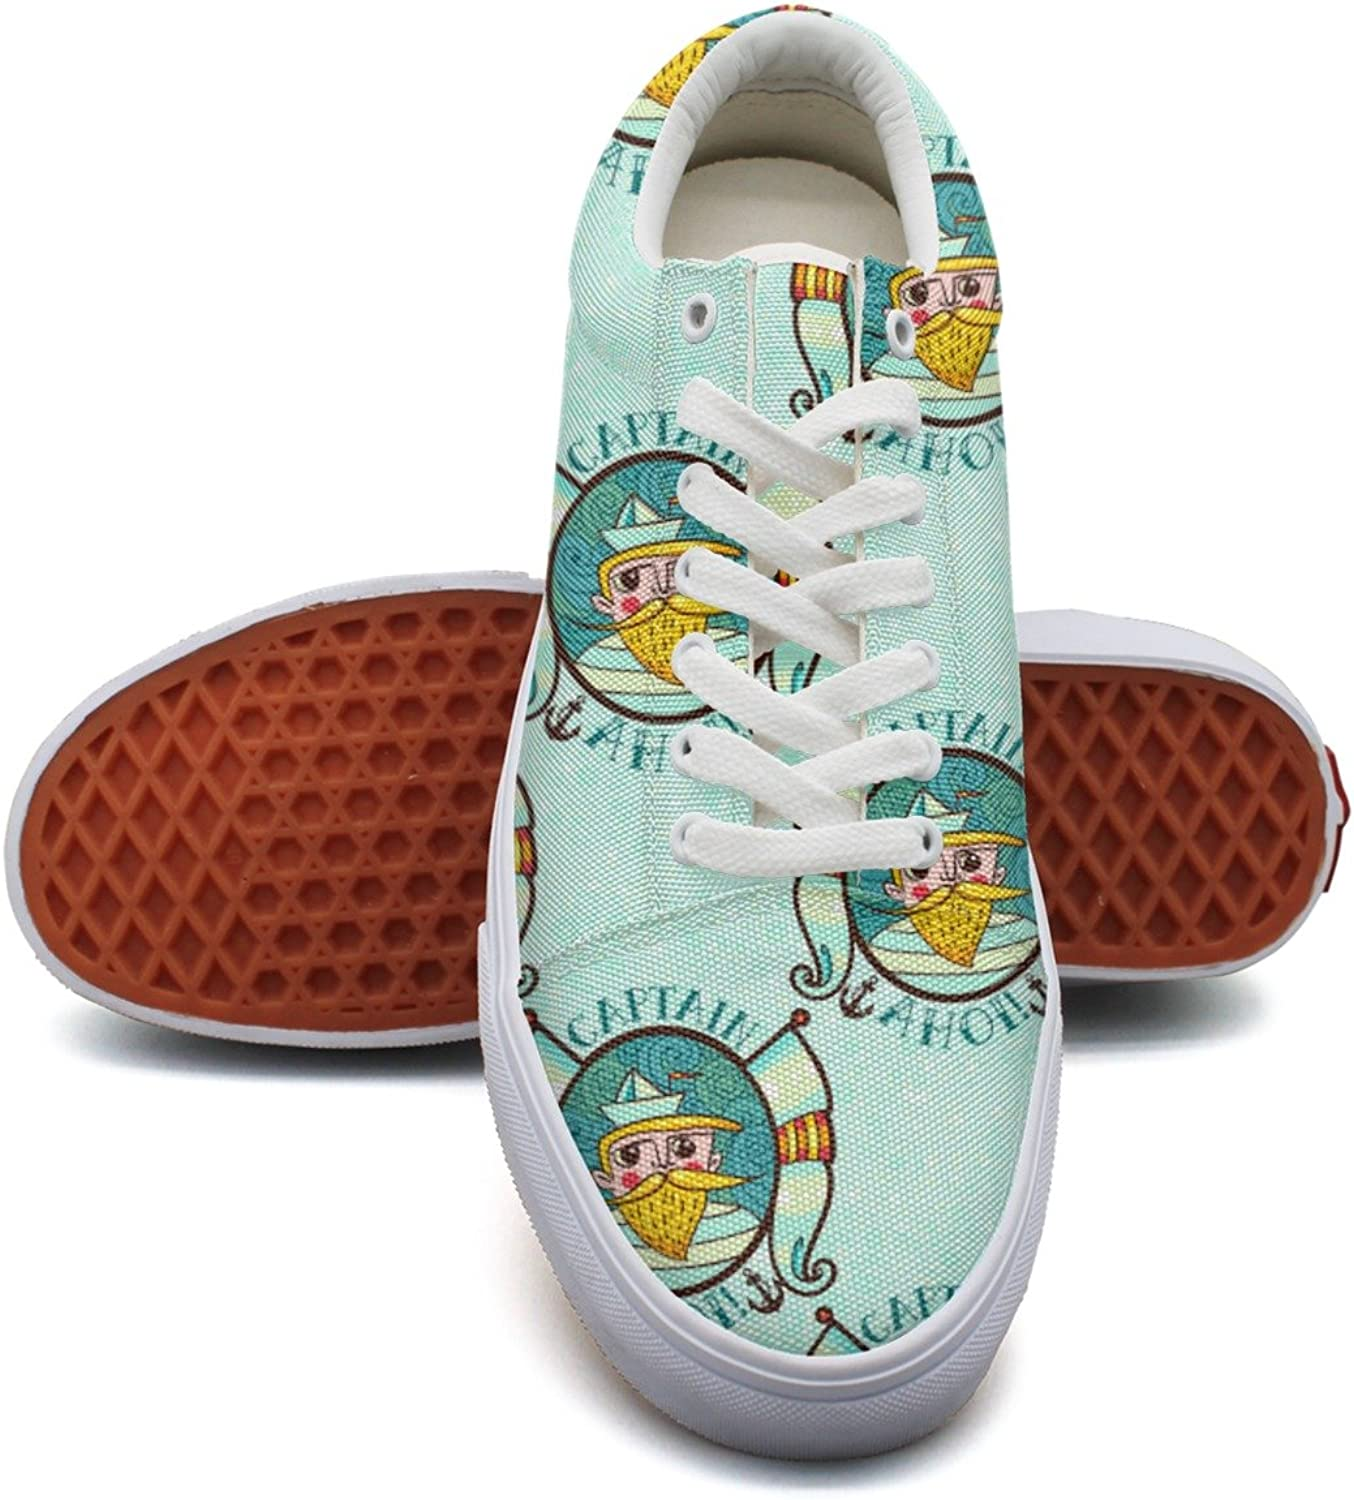 Feenfling Boat Captain bluee Womens Casual Canvas Sneakers Low Top Neon Athletic Sneakers for Women